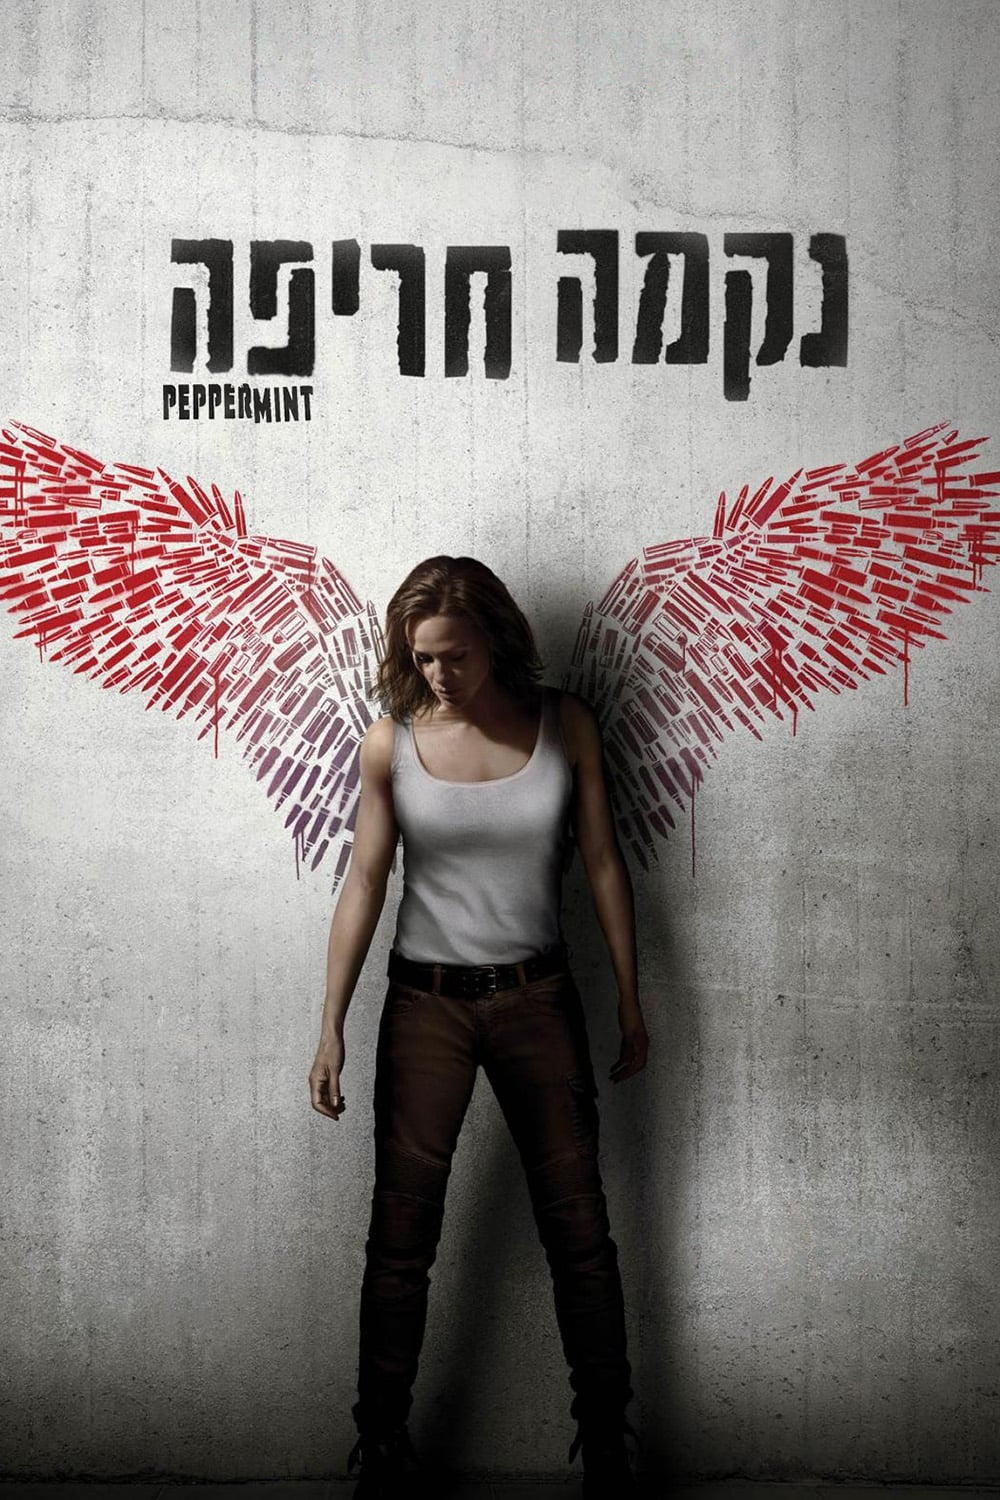 Poster and image movie Film Peppermint: Gustul razbunarii - Peppermint - Peppermint 2018